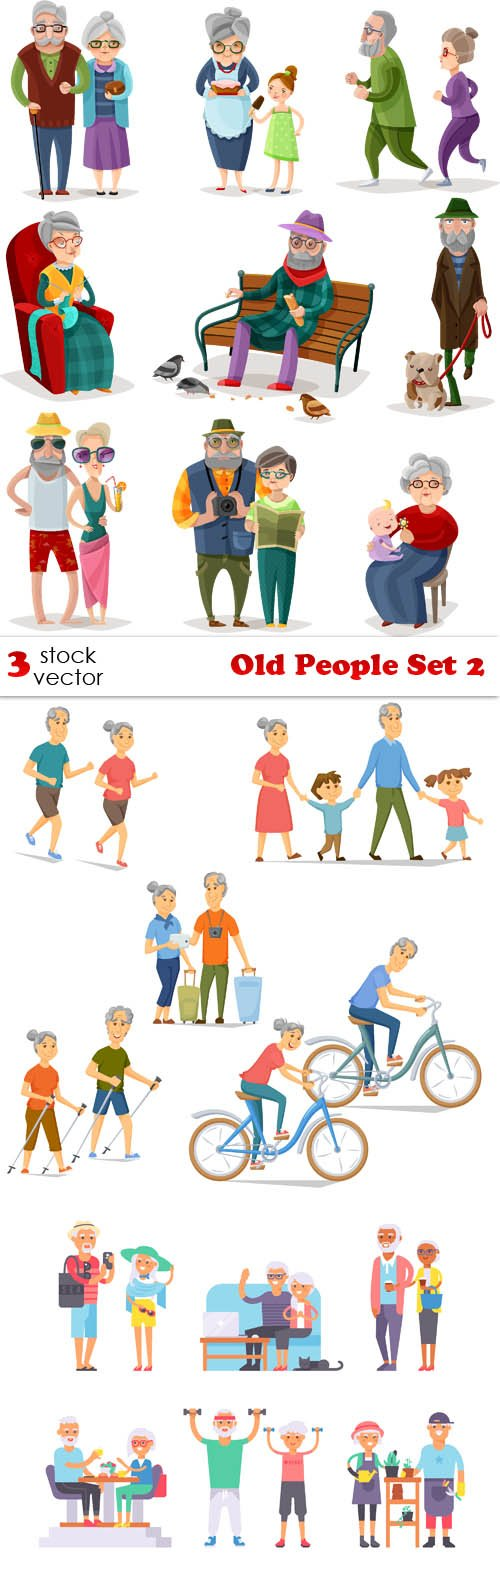 Vectors - Old People Set 2